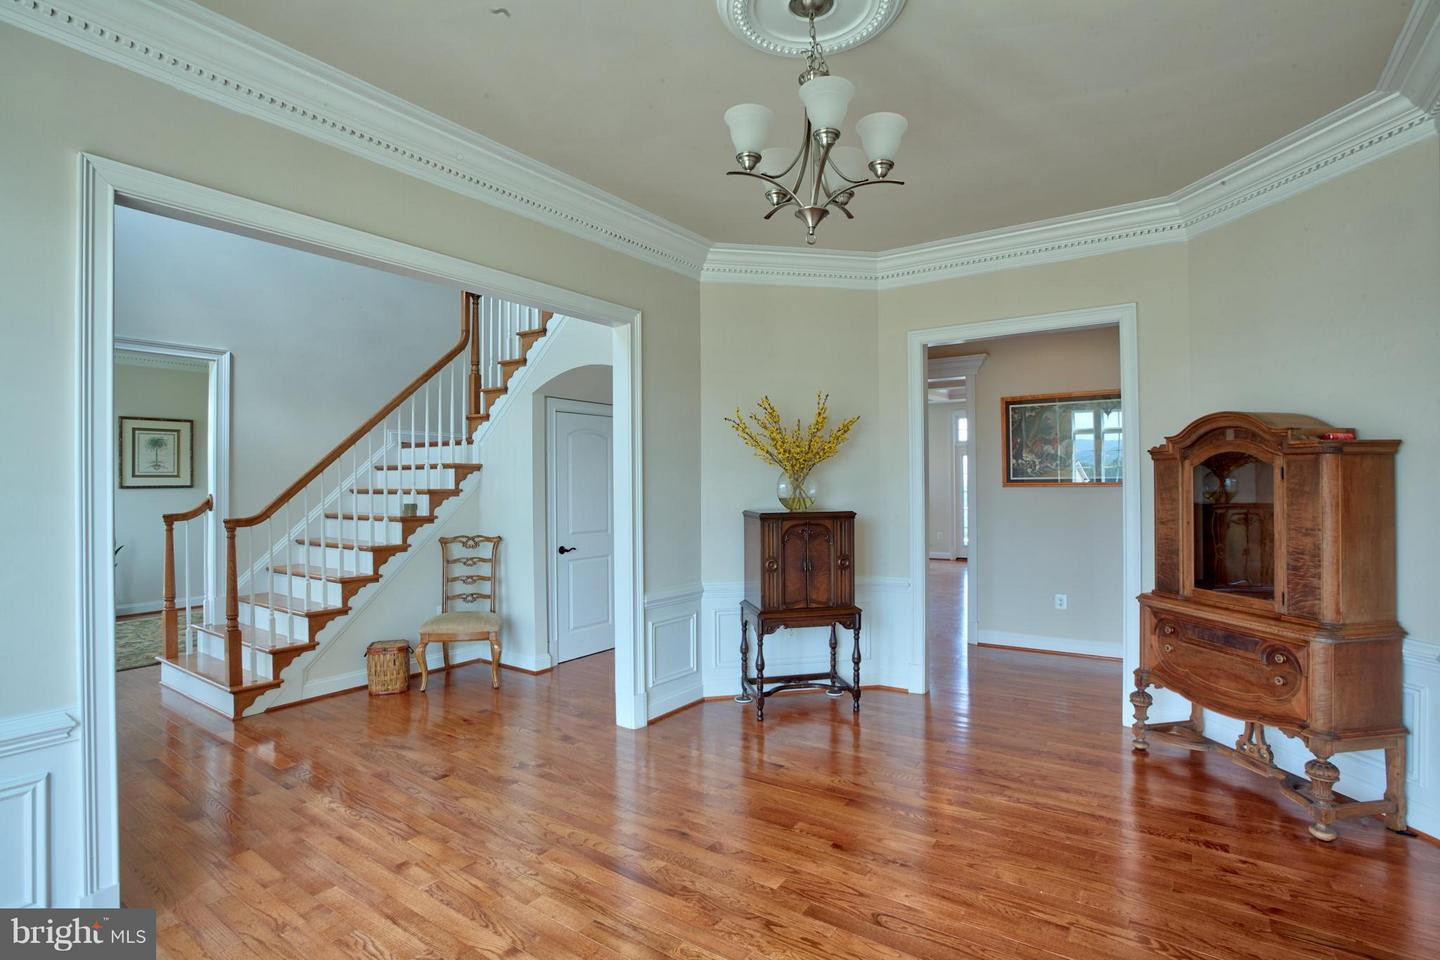 manny hardwood floors bridgeport ct of carrington homes homes for sale all loudoun county homes with bright mris resall 300584142694 11